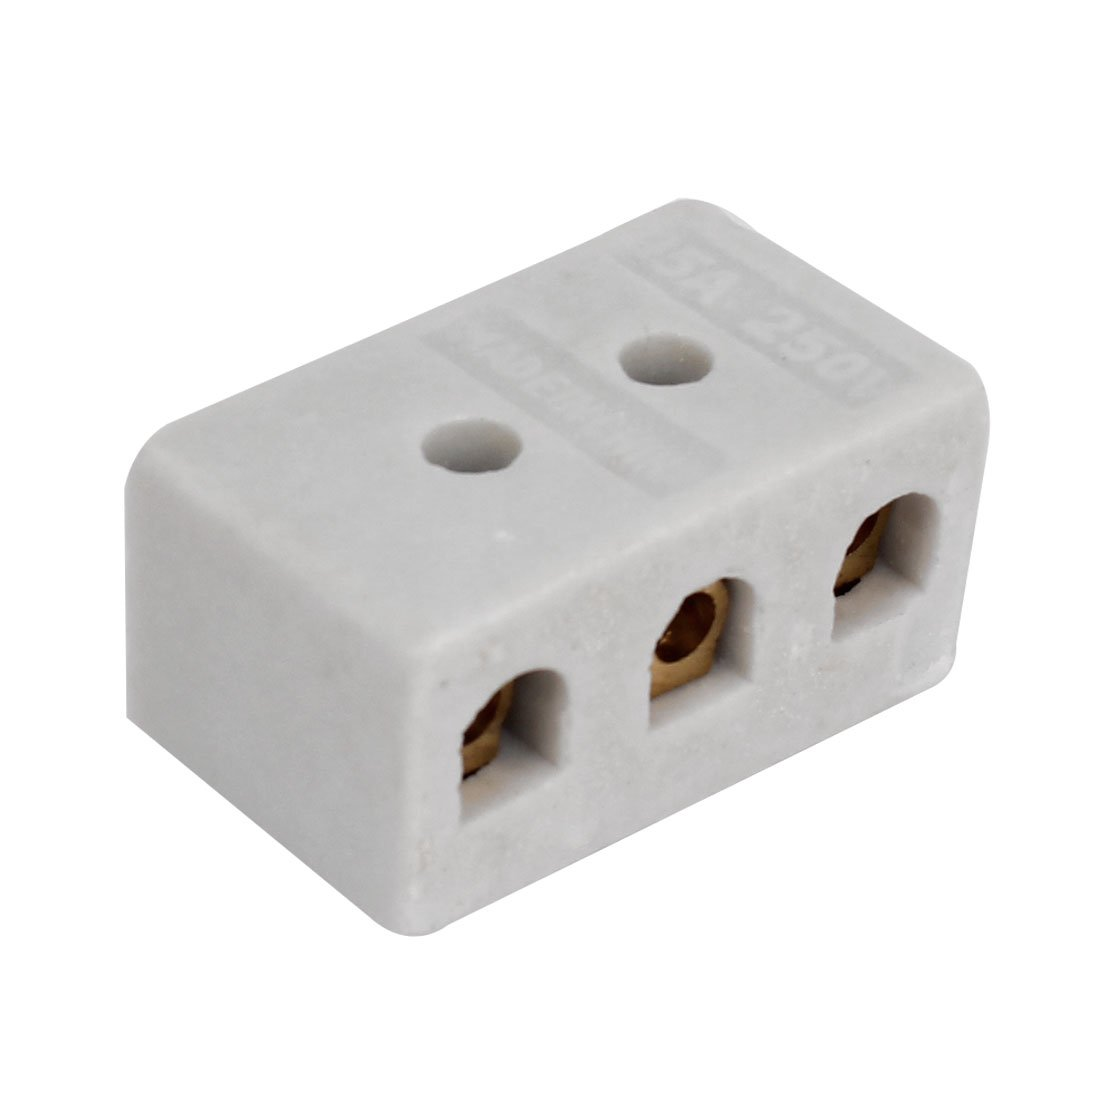 uxcell 3 Way Ceramics Terminal Blocks High Temp Porcelain Ceramic Connectors 31x20x14mm for Electrical Wire Cable